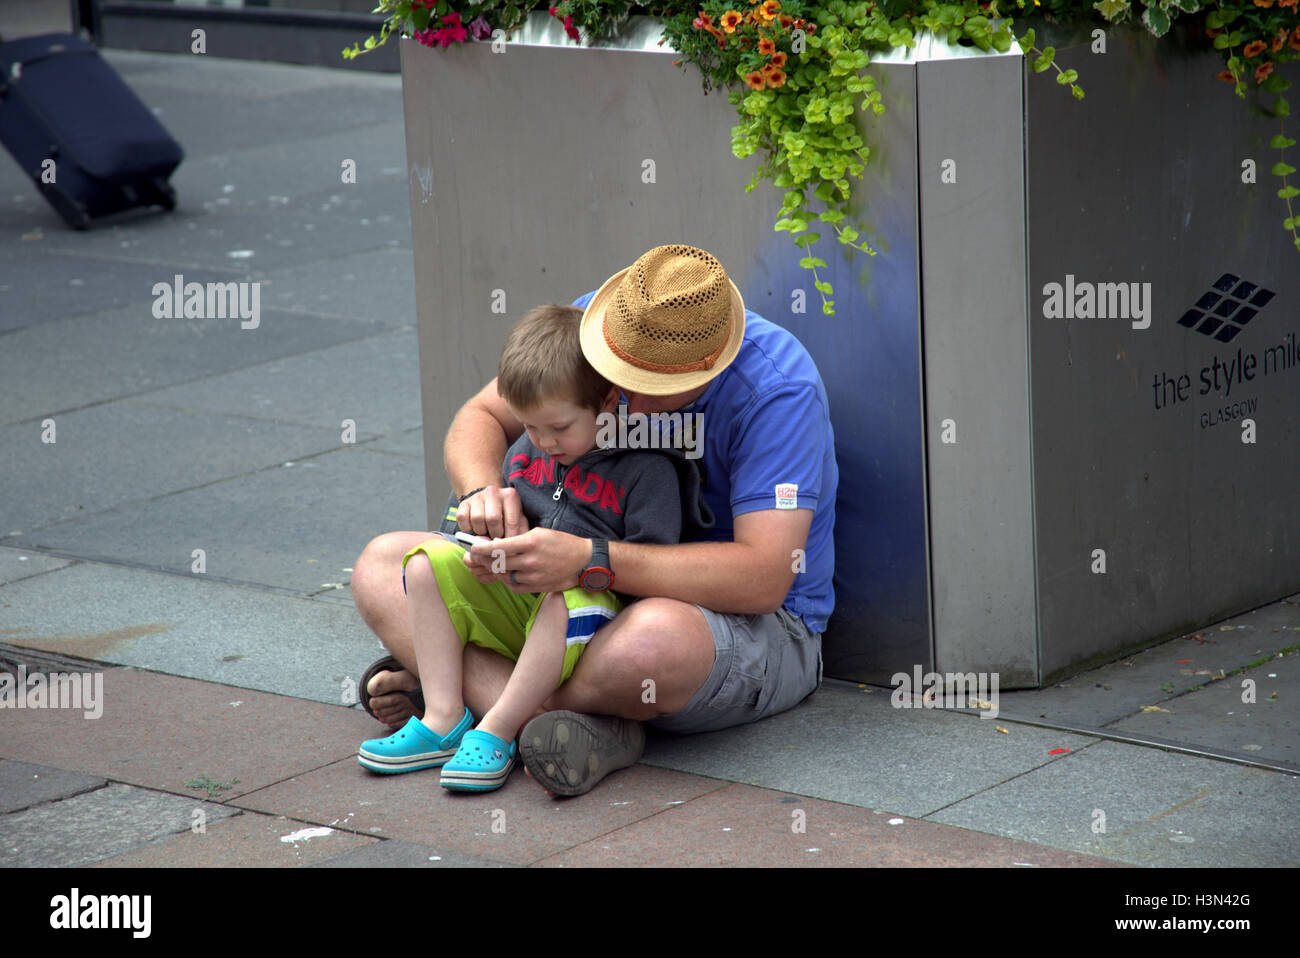 Glasgow street scenes father and son use mobile phone together while sitting on ground Stock Photo